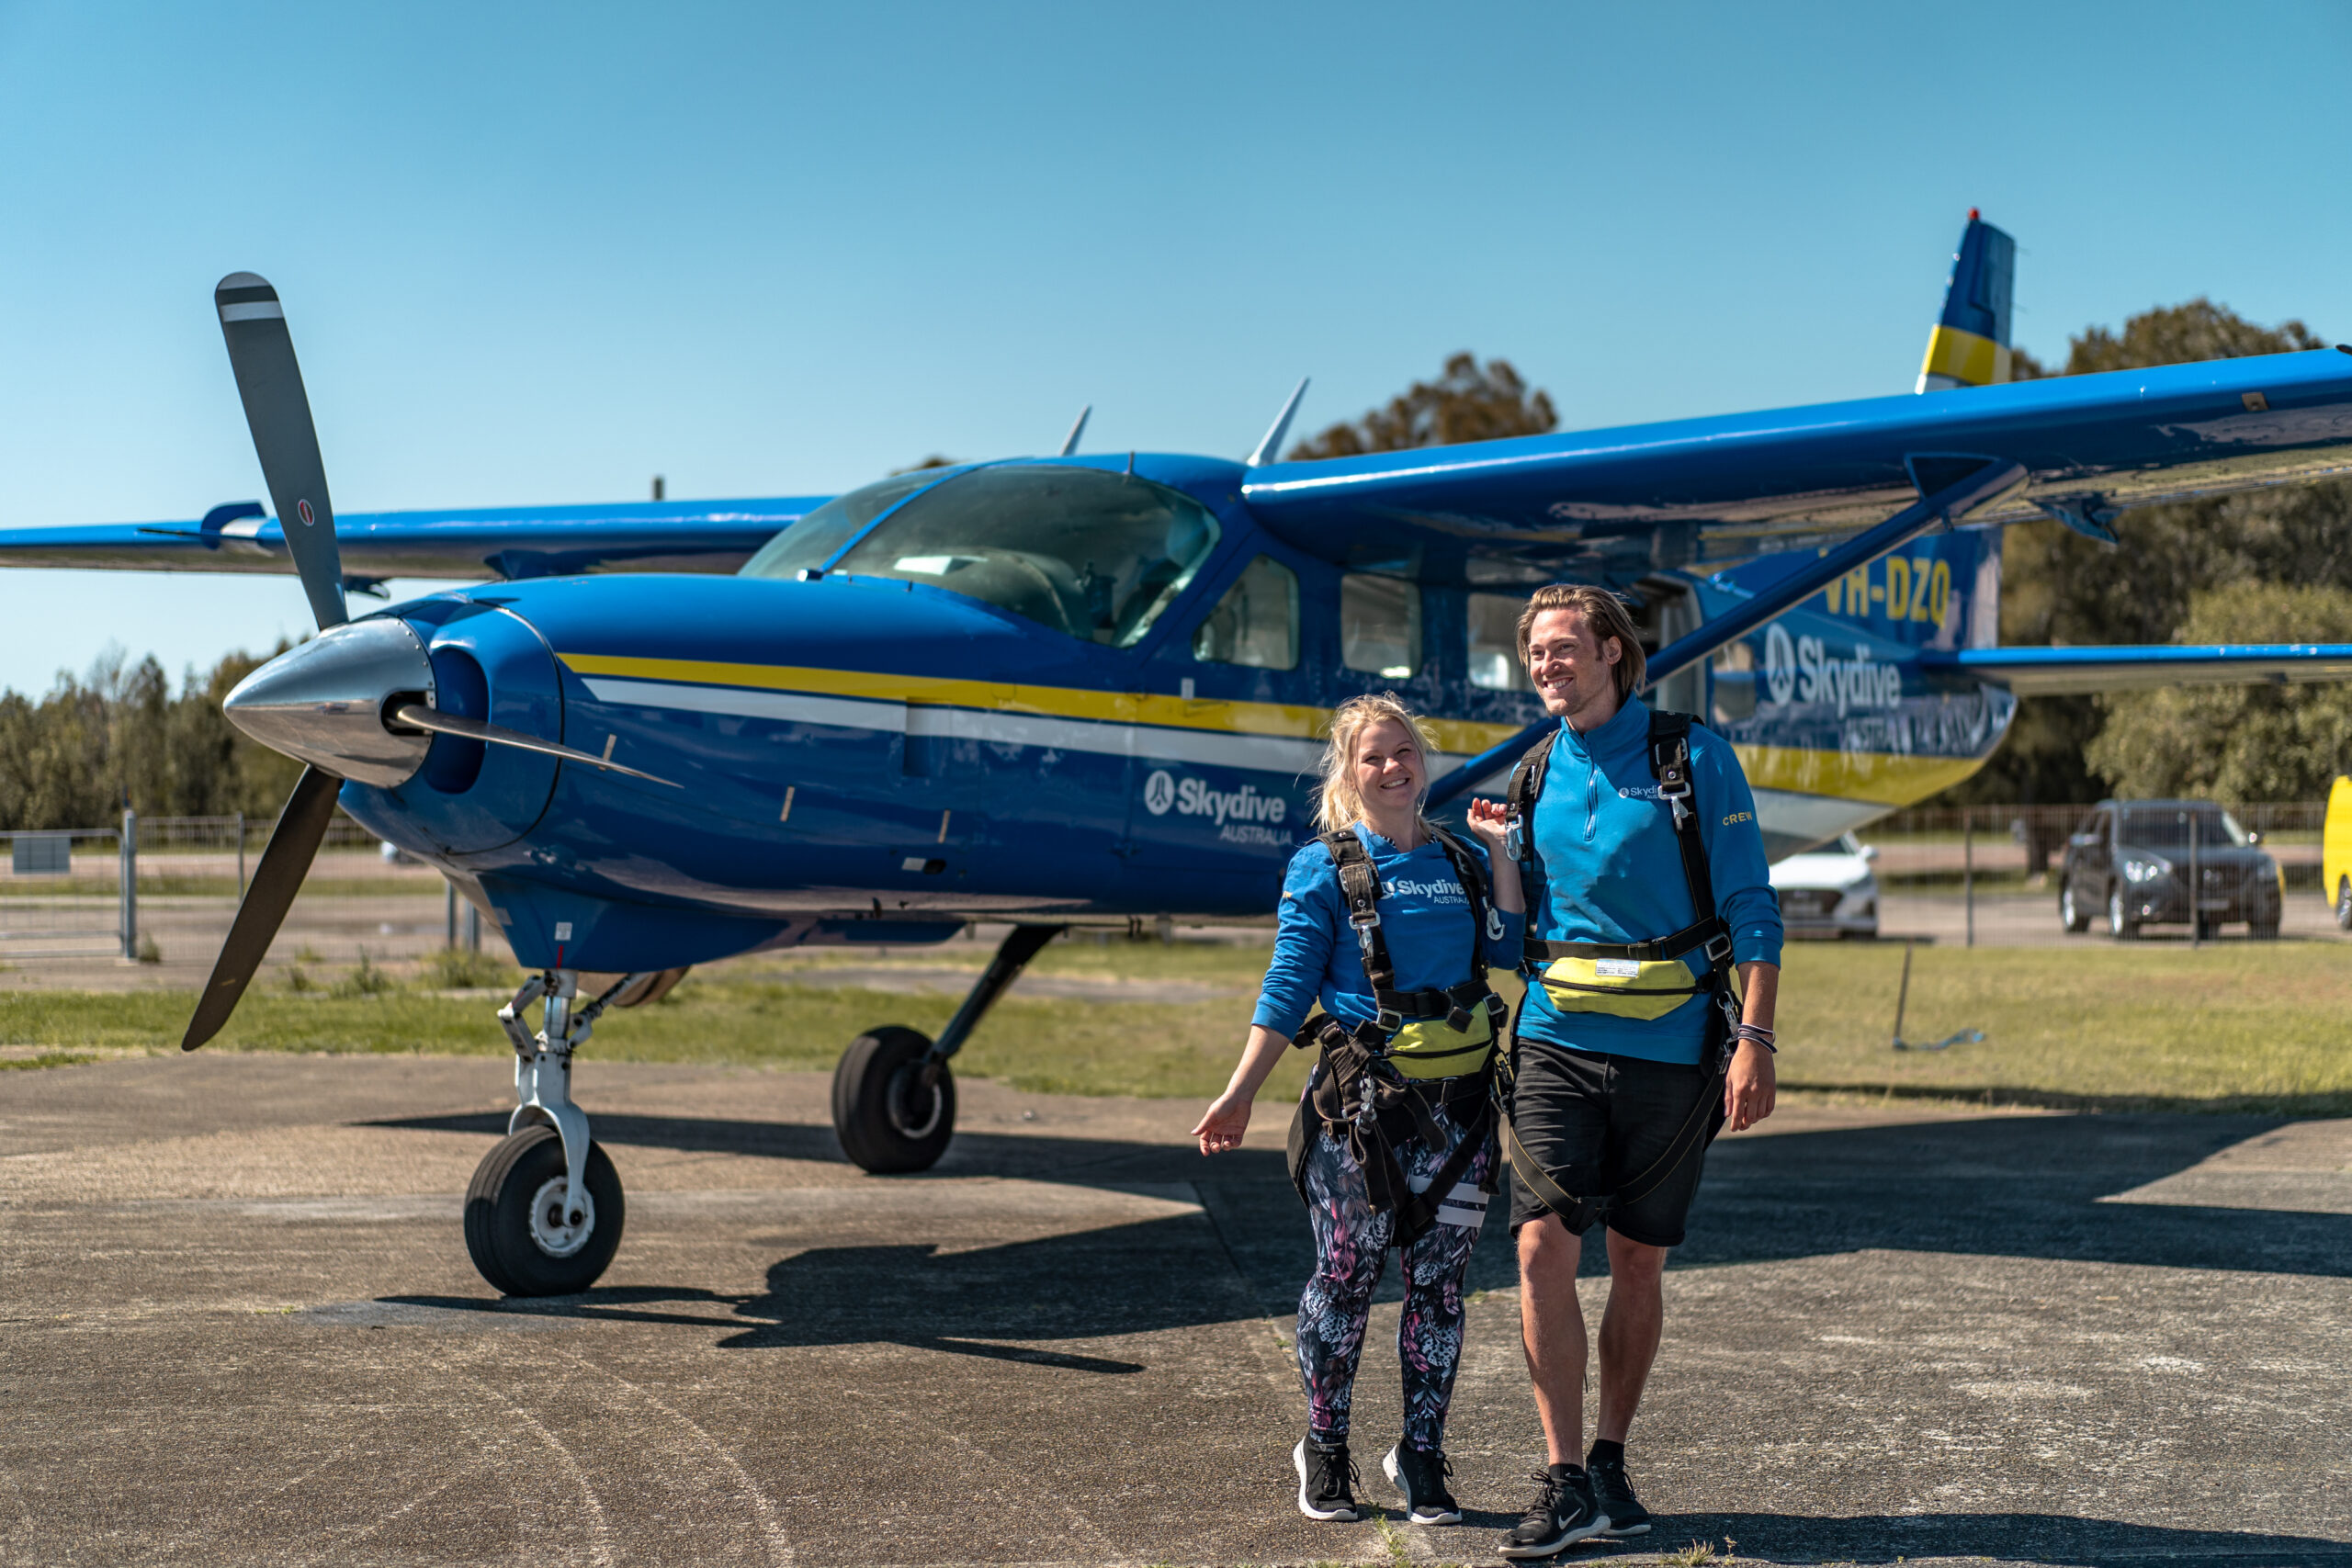 Skydive Australia x Vagabonds of Sweden